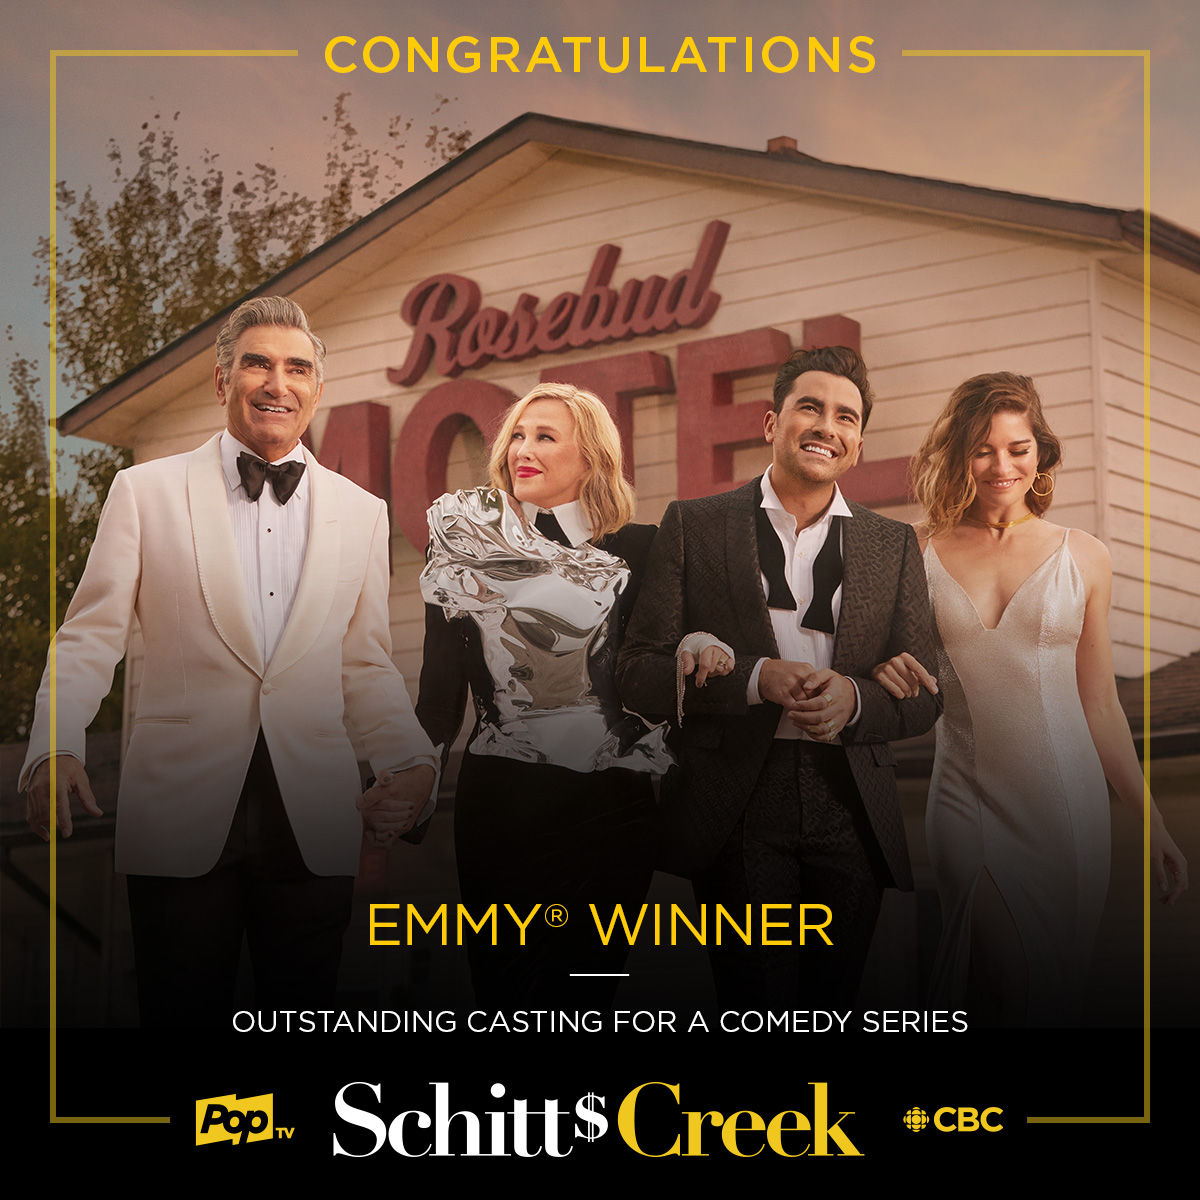 Congratulations to the casting team and the cast of #SchittsCreek! 🥂💛 #Emmys https://t.co/1cEDEpK1yo